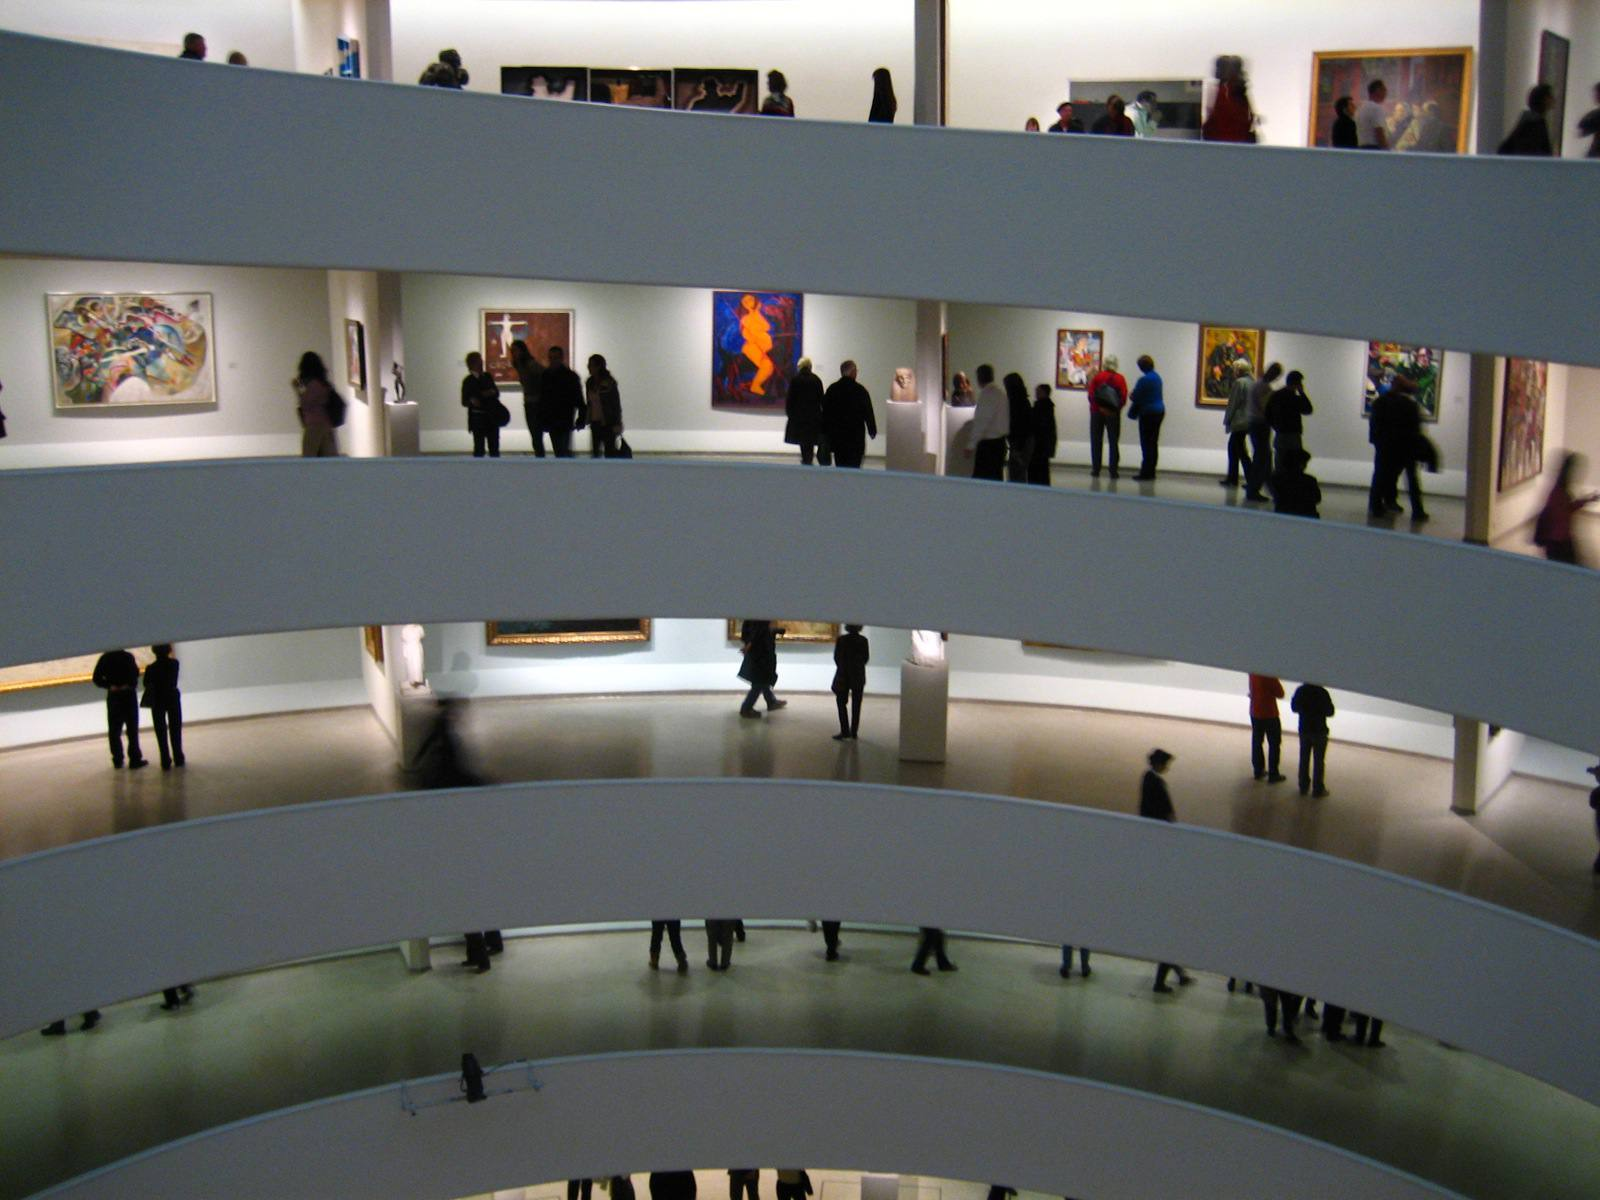 Visitors viewing exhibitions on the spiral at the Guggenheim Museum, NYC